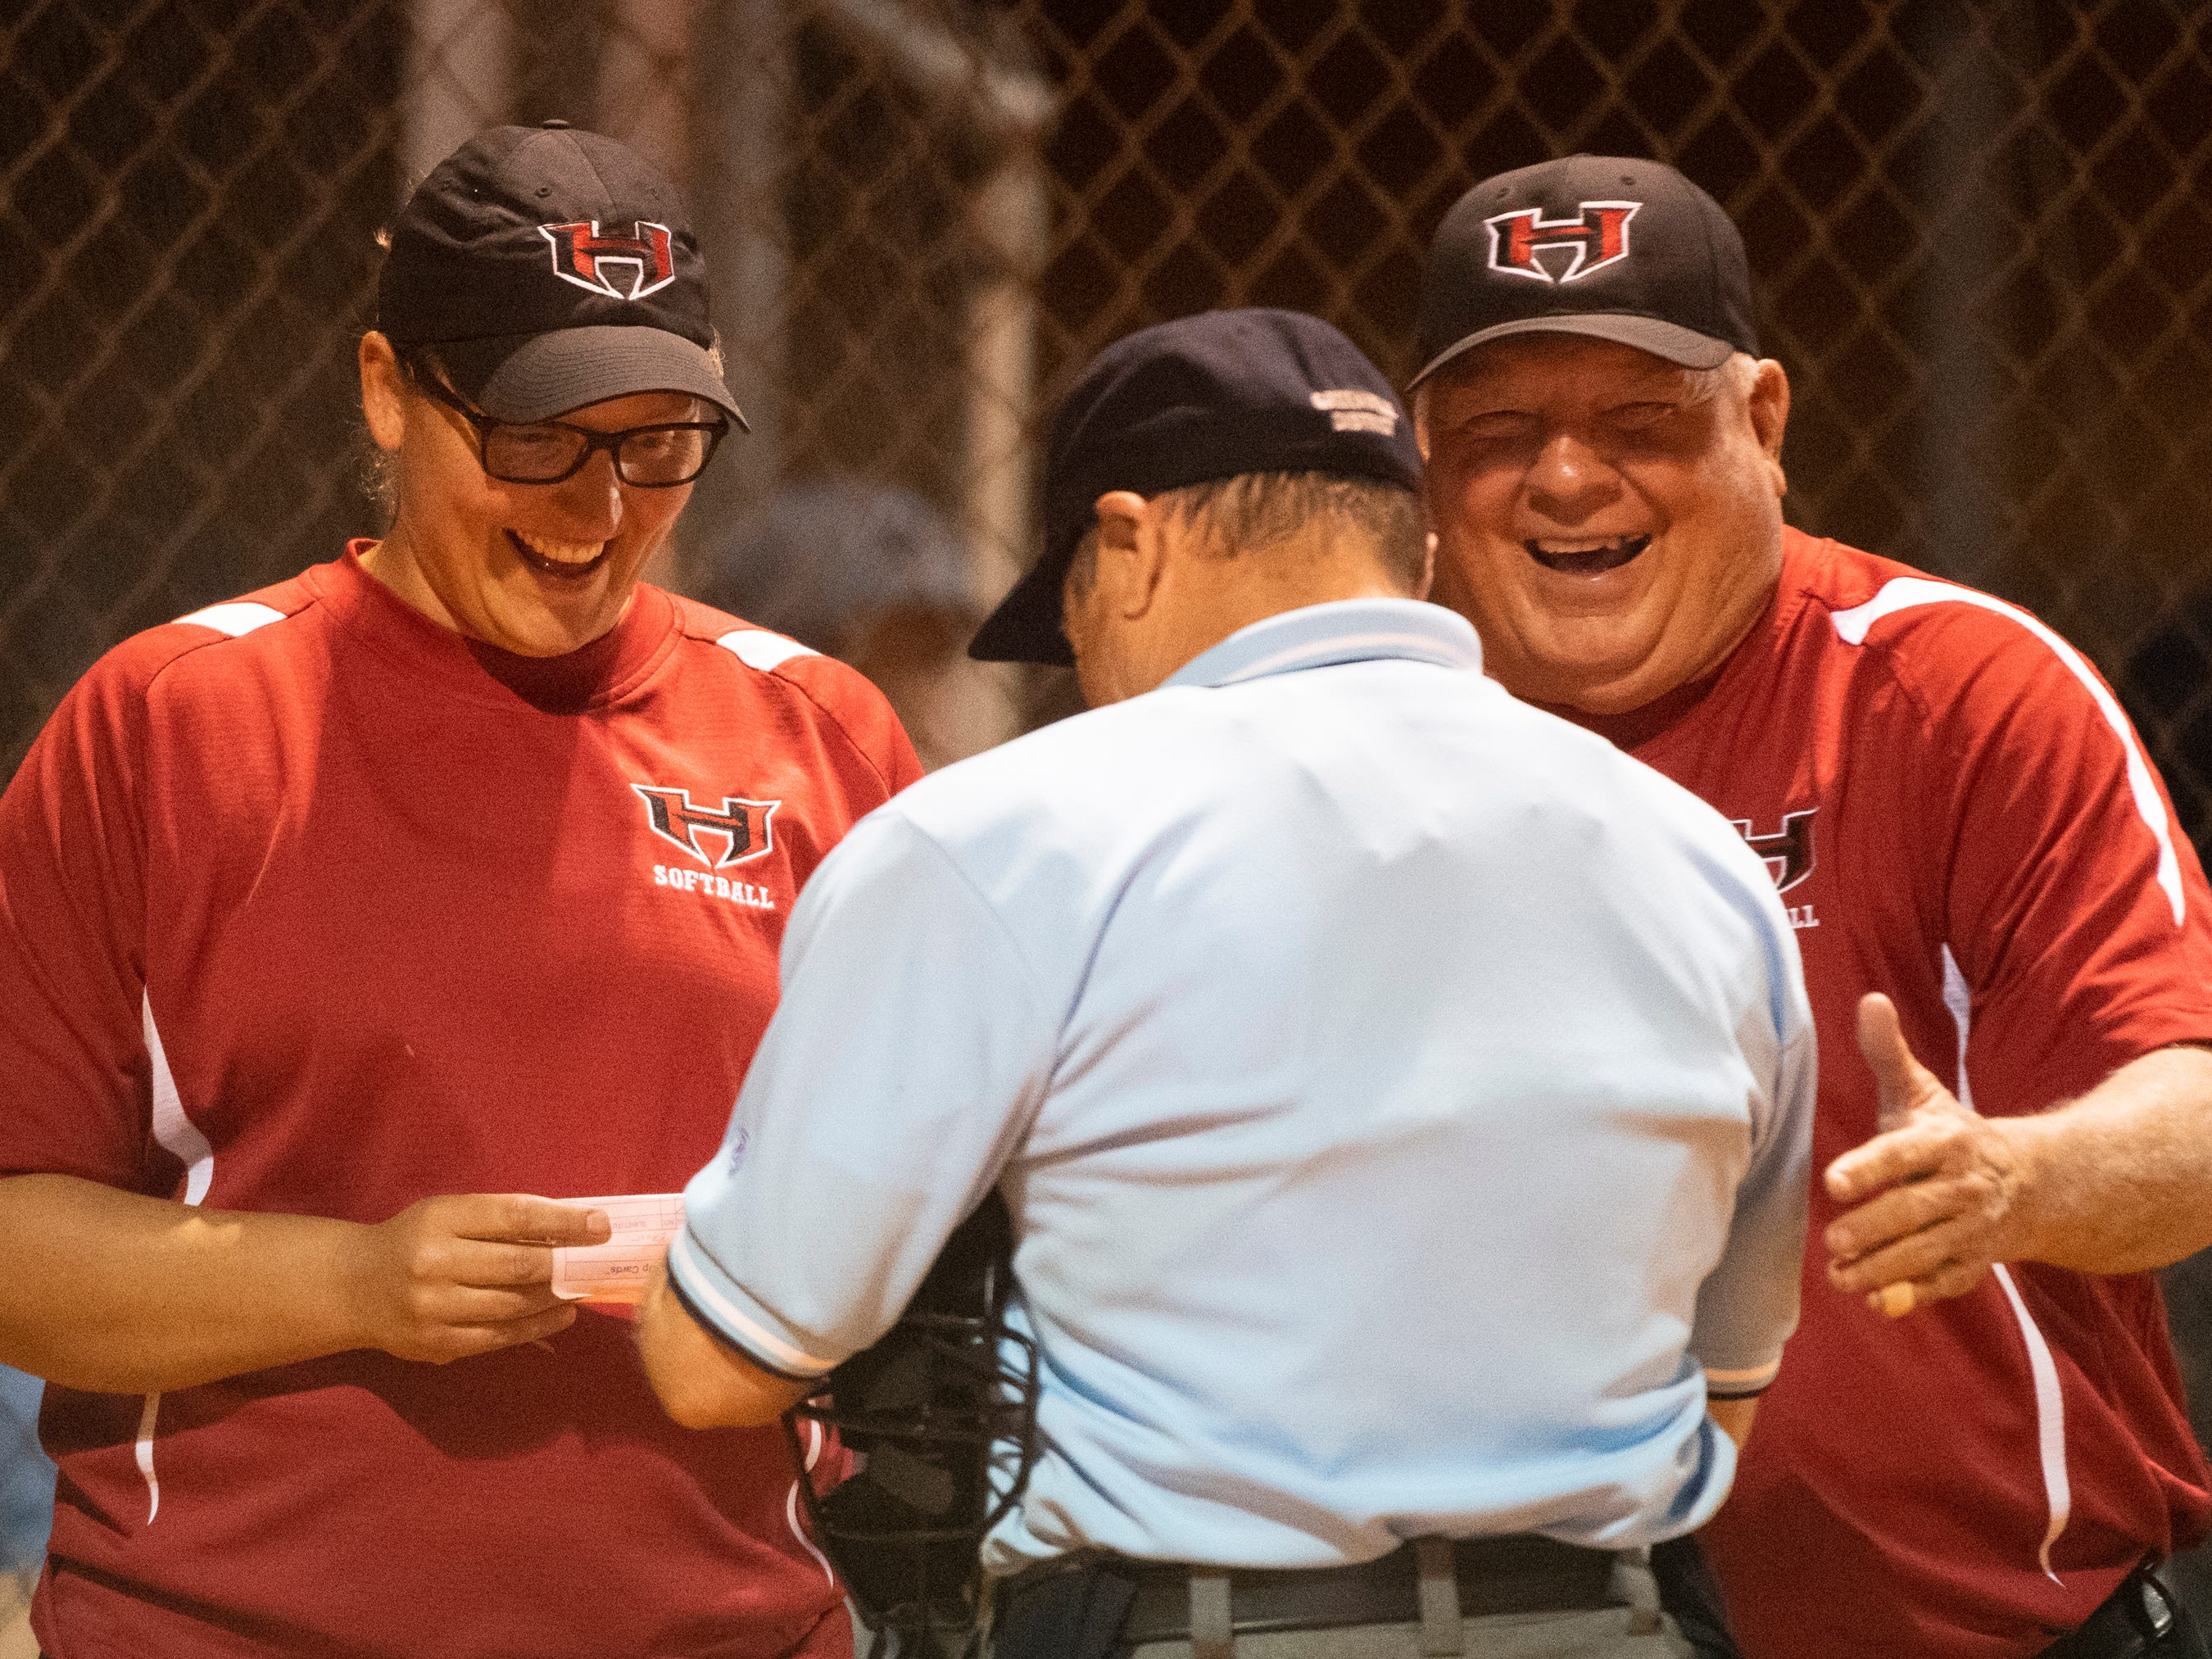 Hillcrest's coaches Kristen Brust and Larry Wooten talks to the umpire during the game at Hillcrest Friday, April 12, 2019.